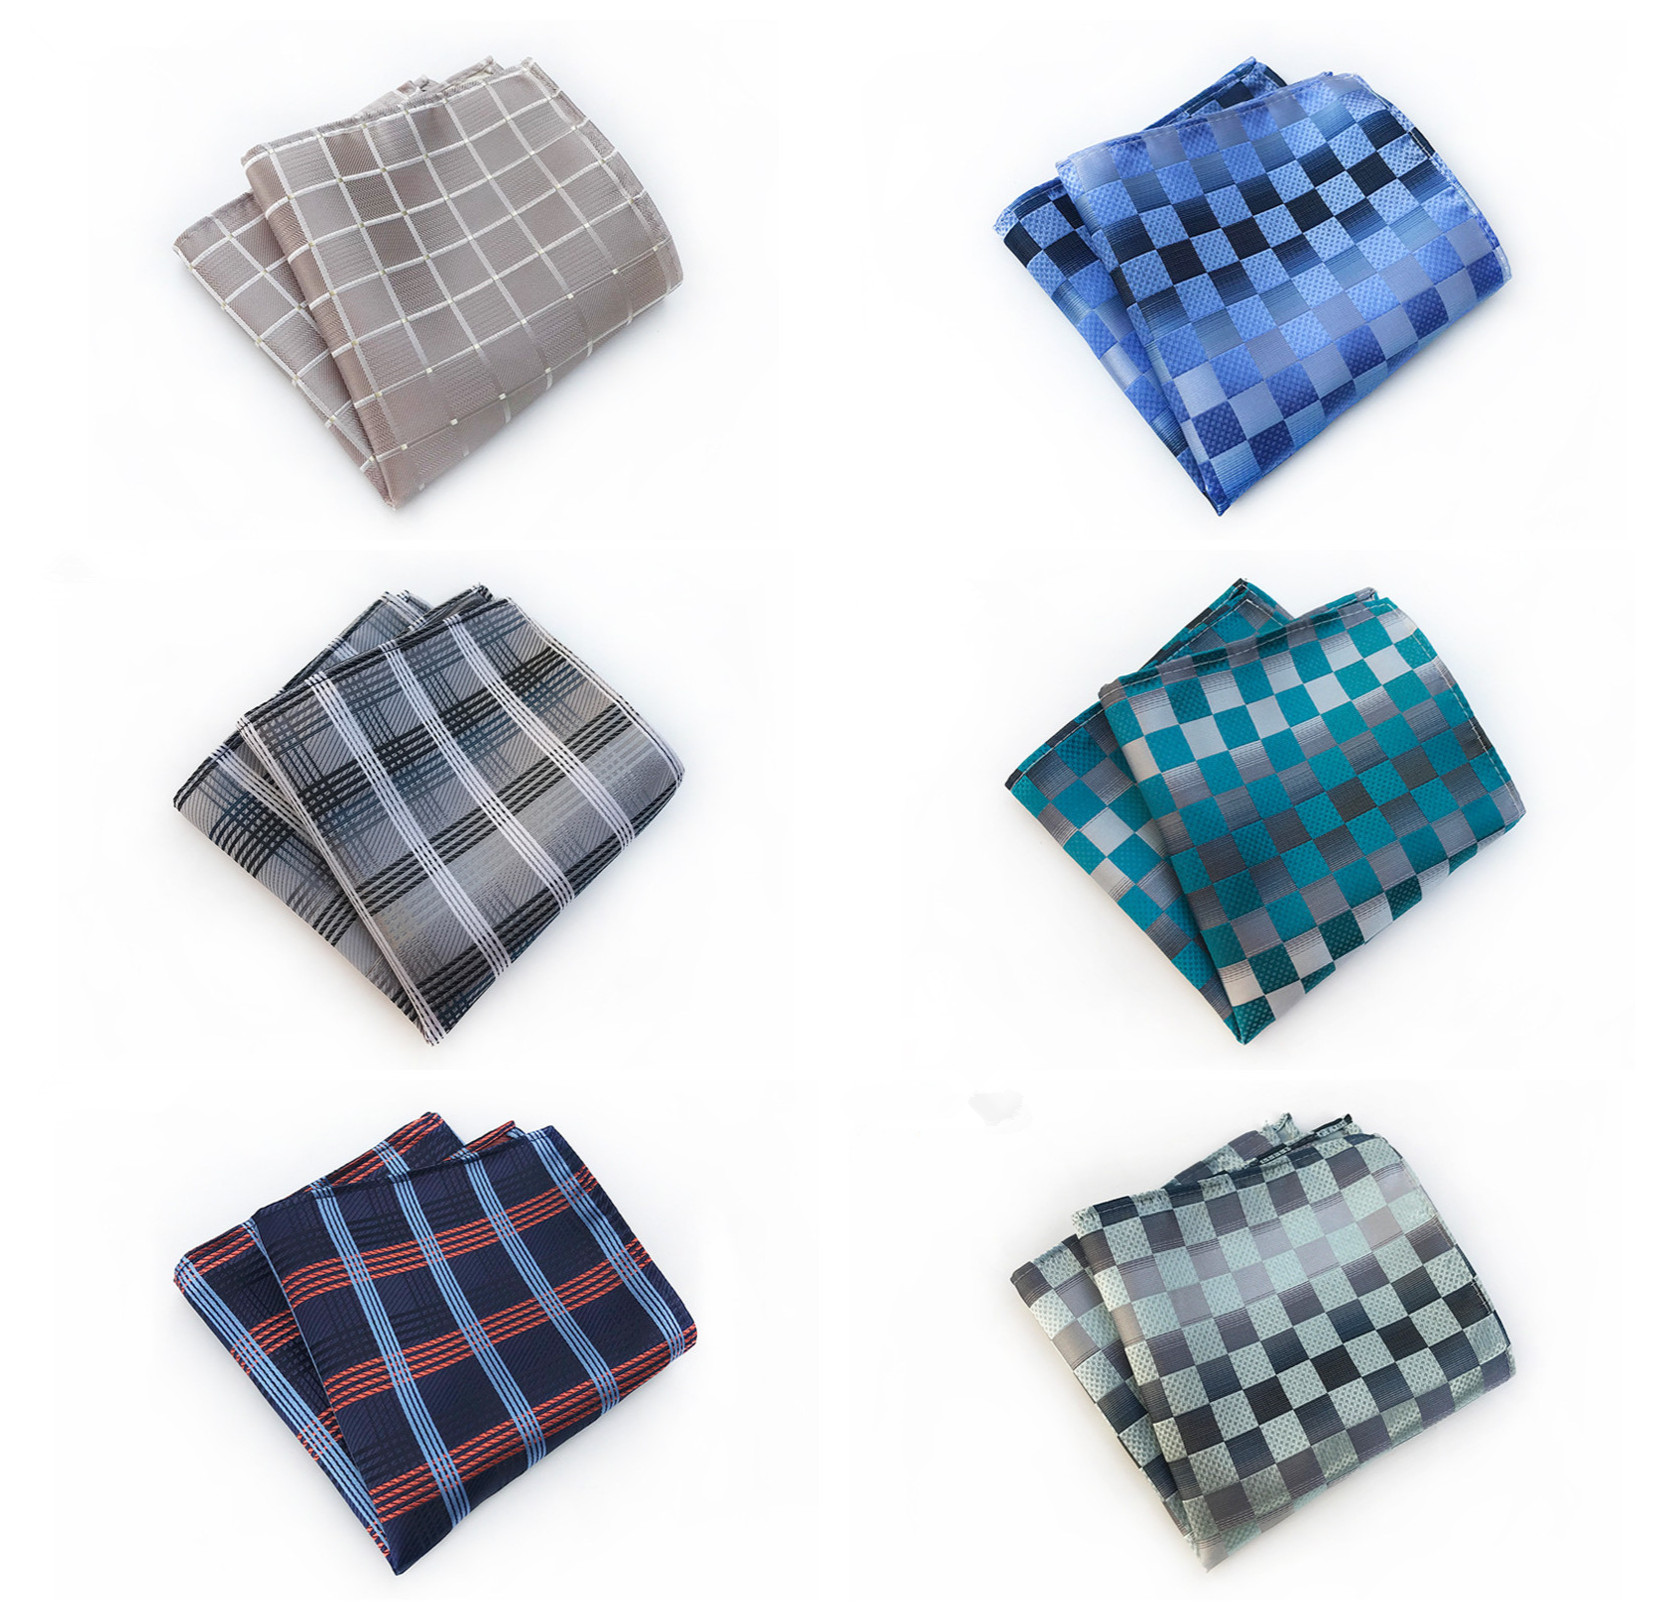 2019 Fashion Quality Explosion Flower Men's Pocket Towel Simple Personality Business Men's Quality Accessories Handkerchief